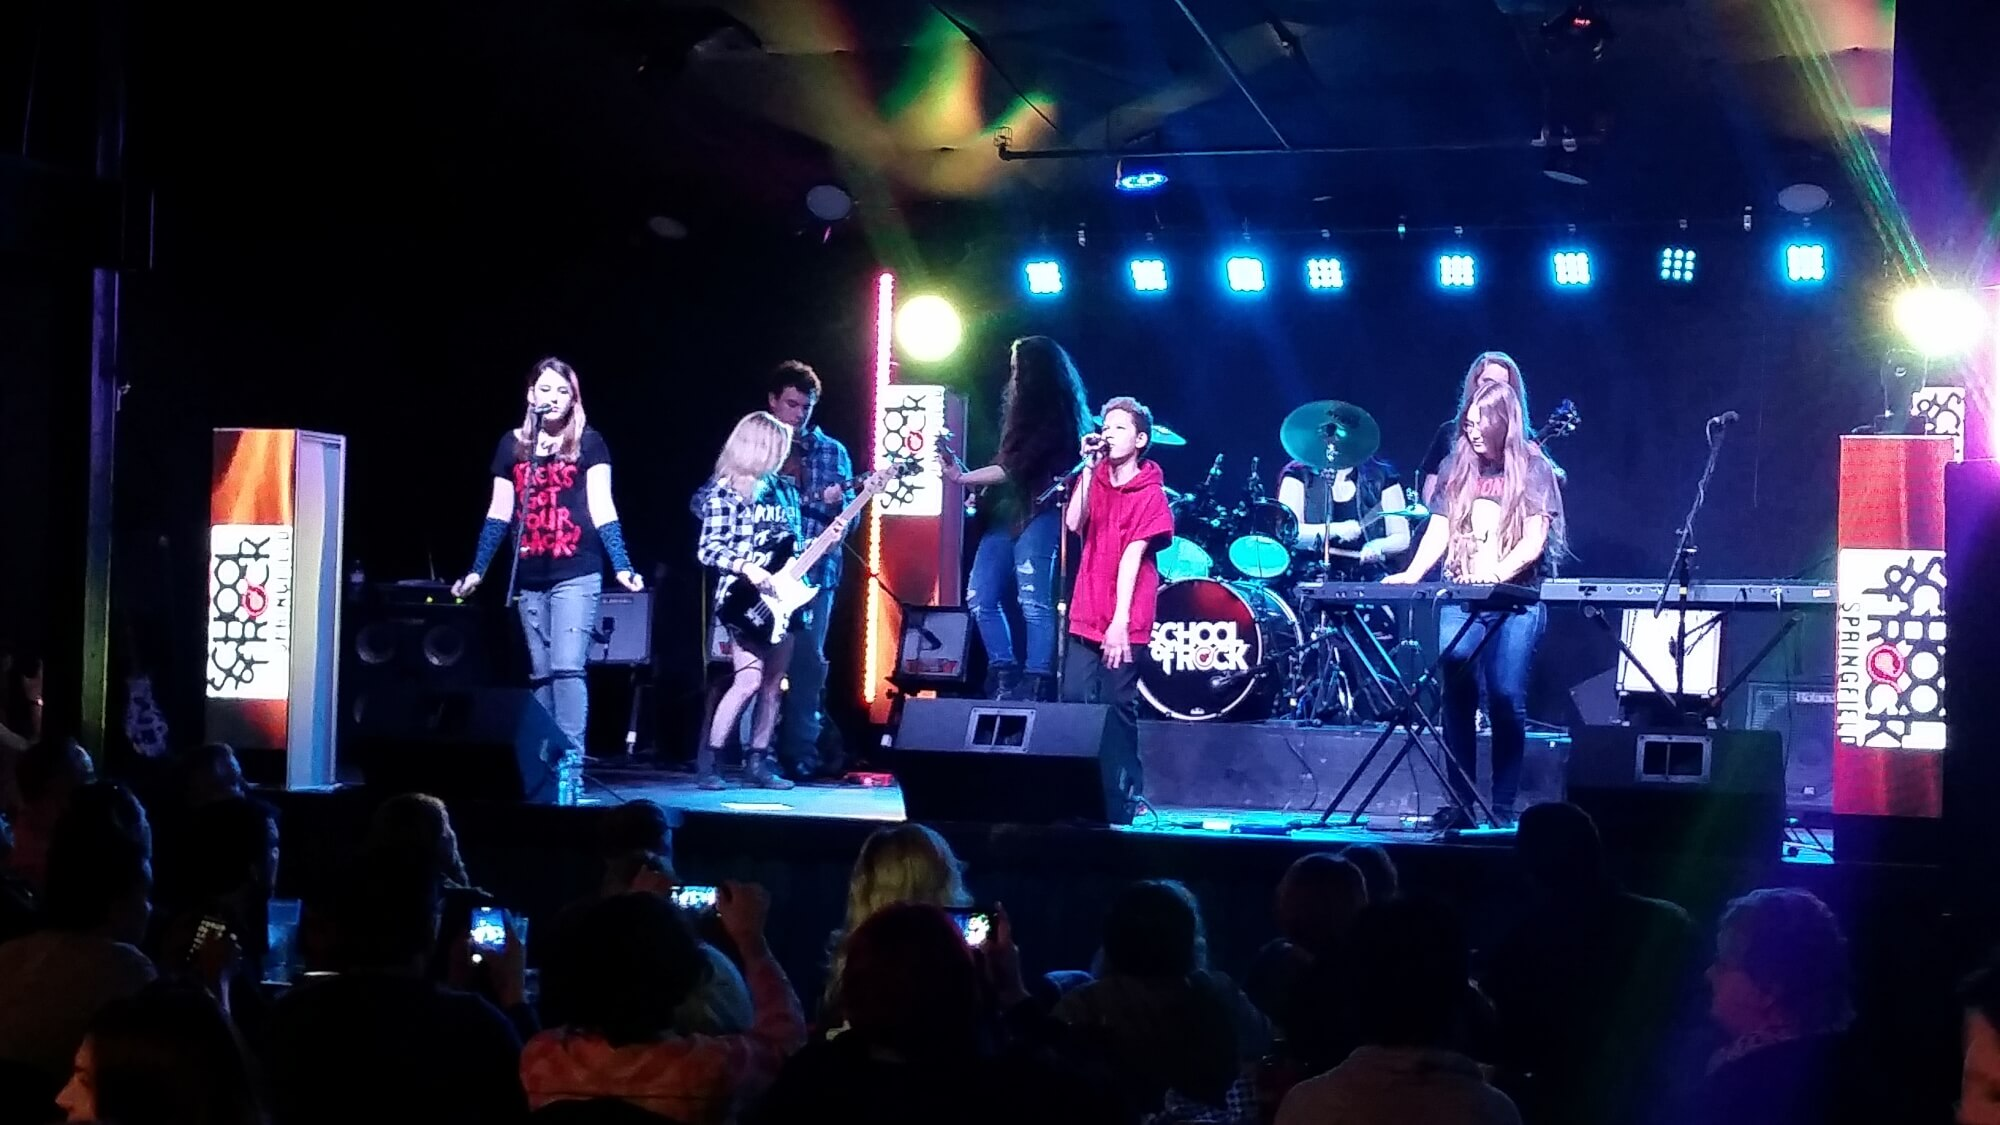 Students performing at Krave.